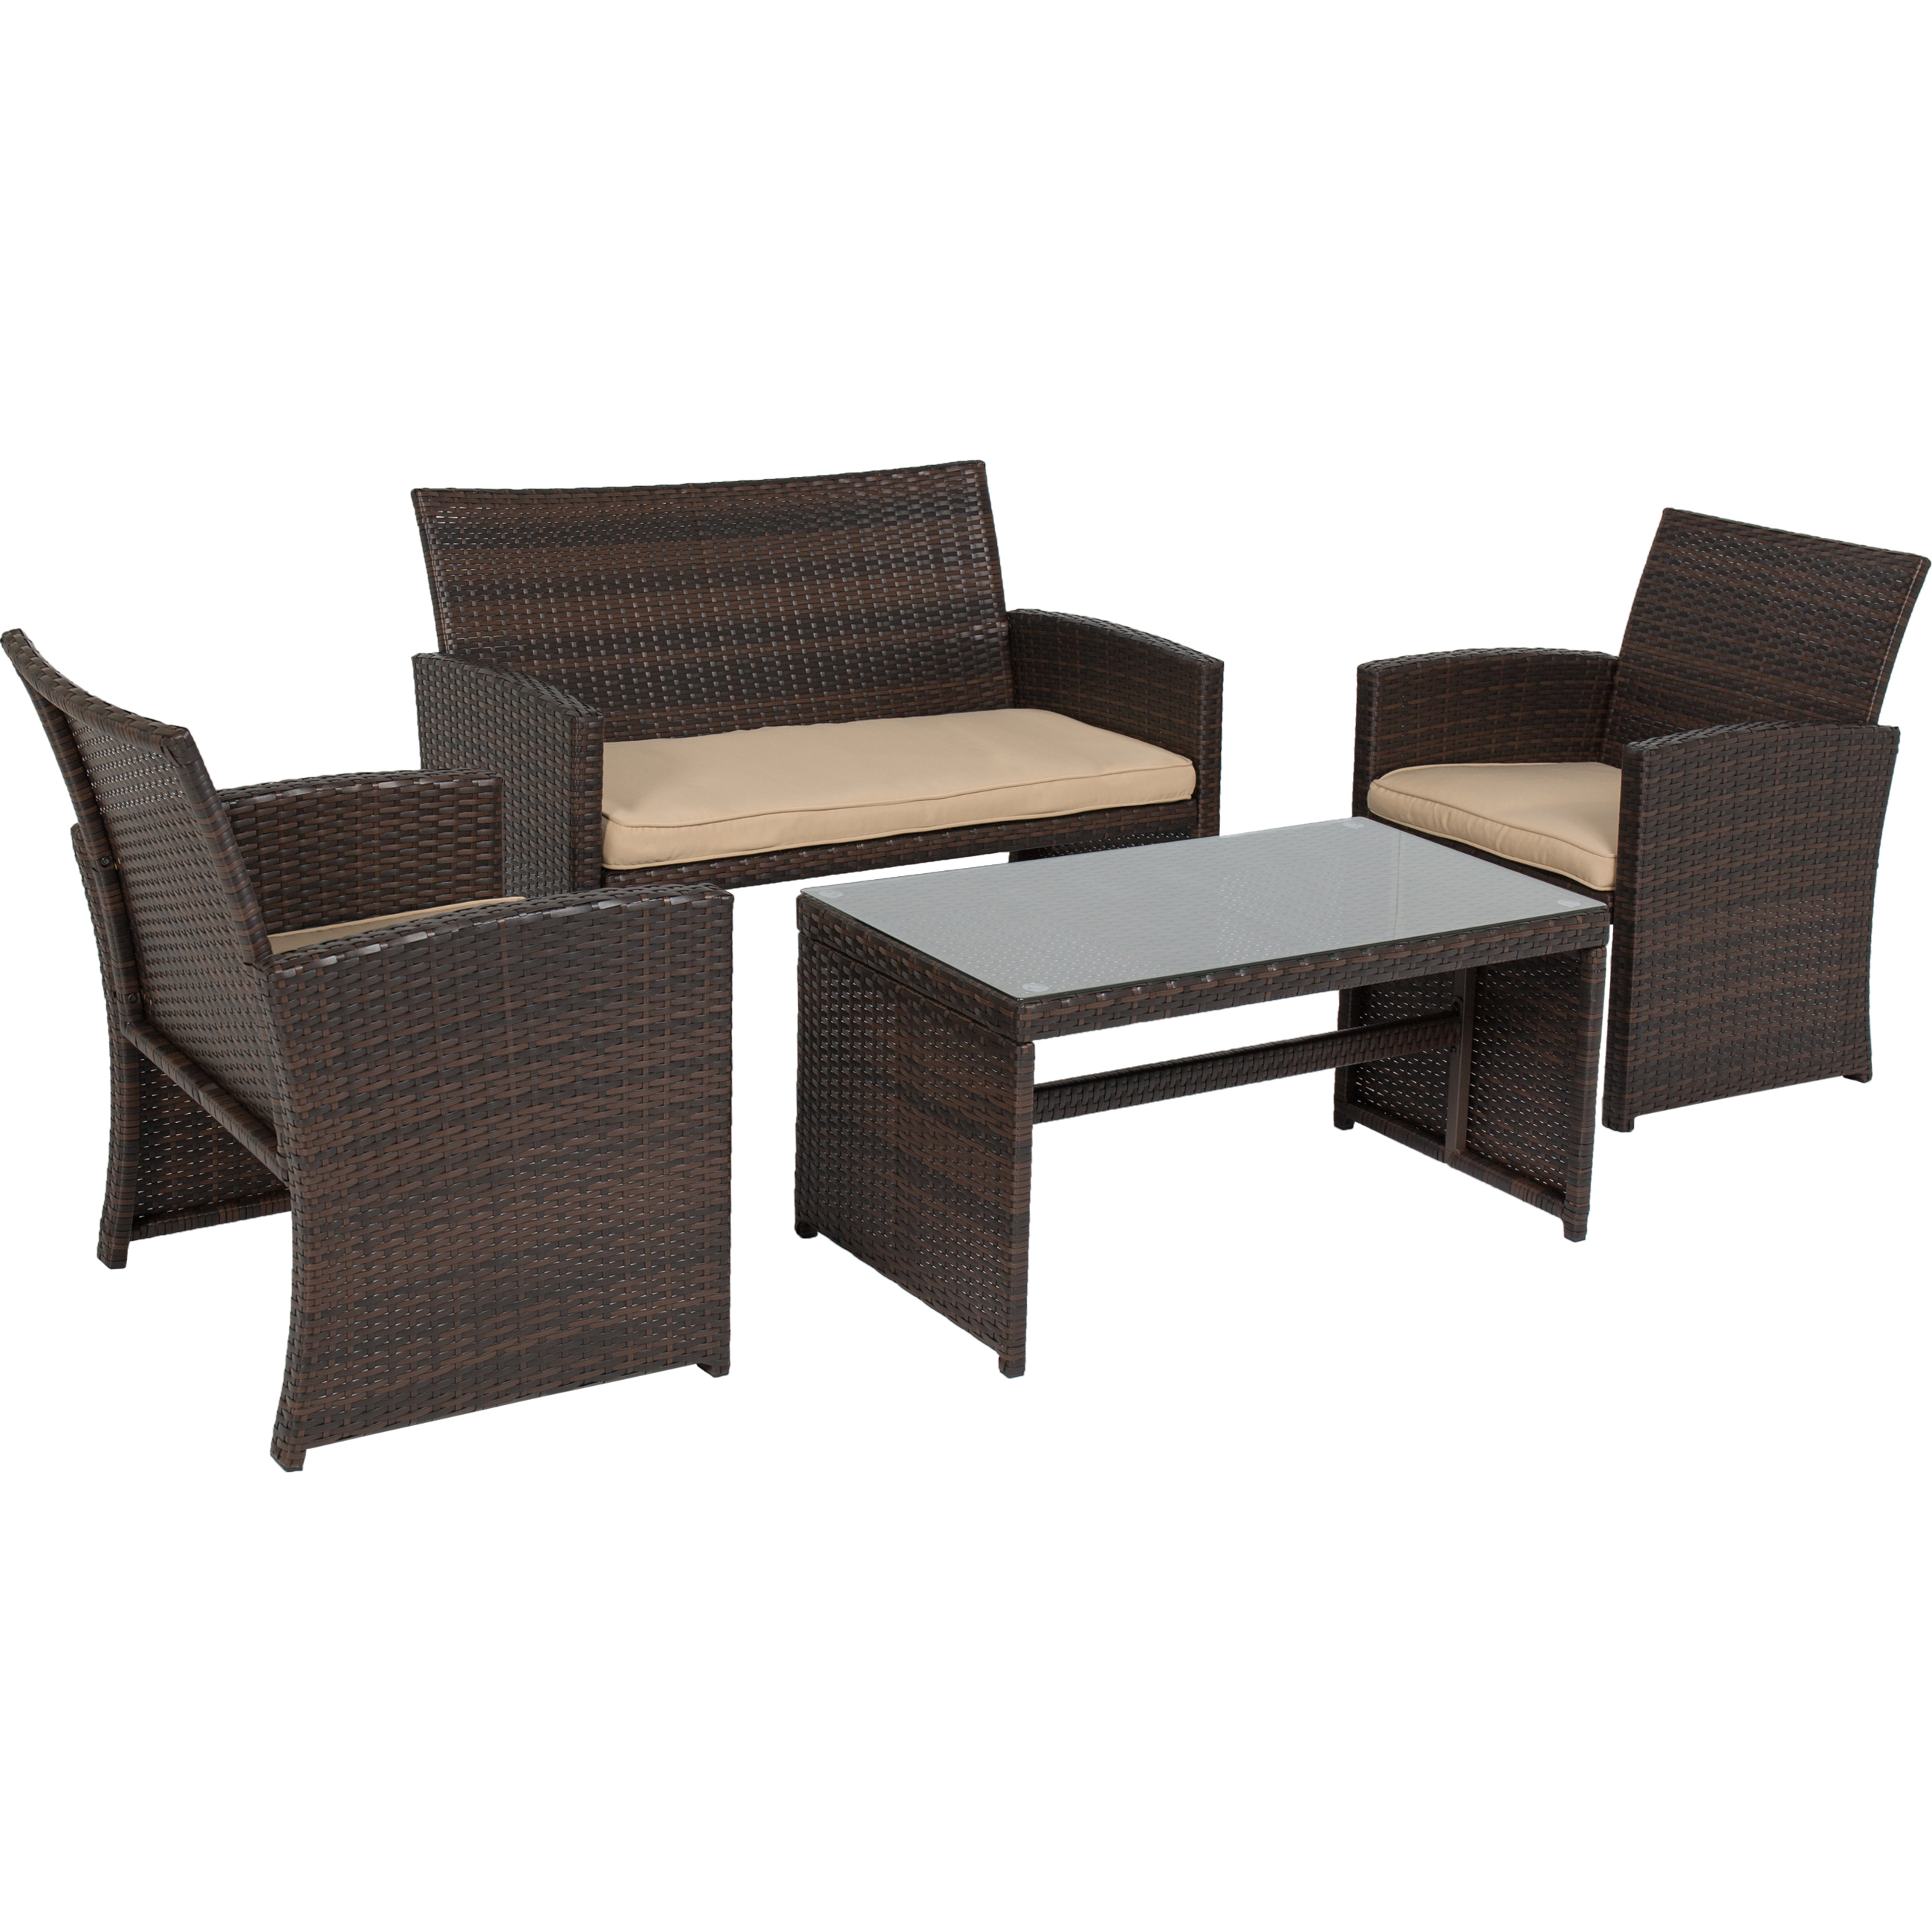 Best Choice Products Outdoor Garden Patio 4pc Cushioned Seat